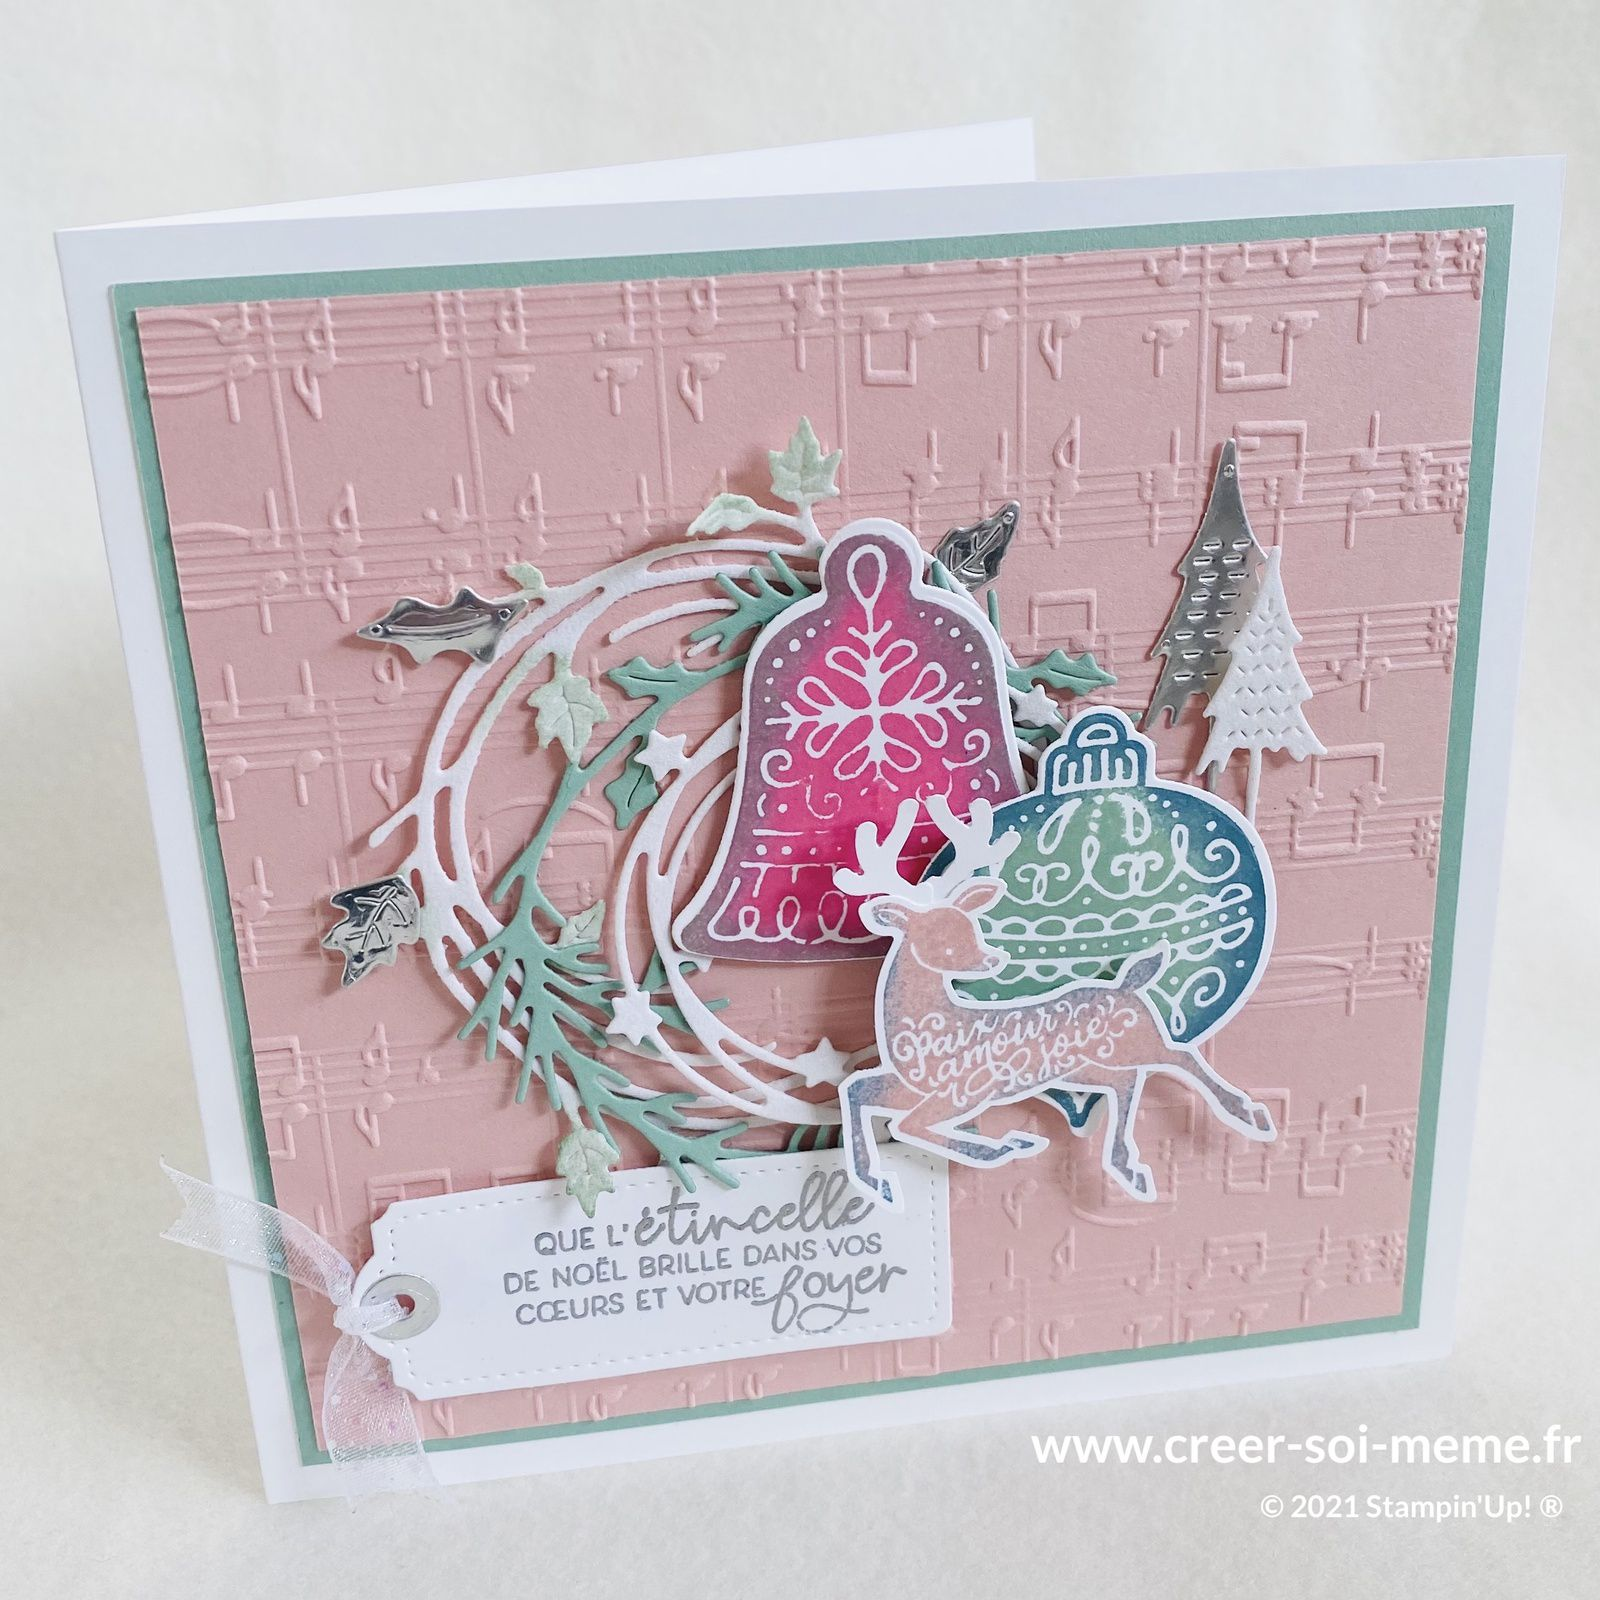 noel rose stampin up 2021 couleur pastel cerf chevreuil cloche boule sapin couronne fournitures